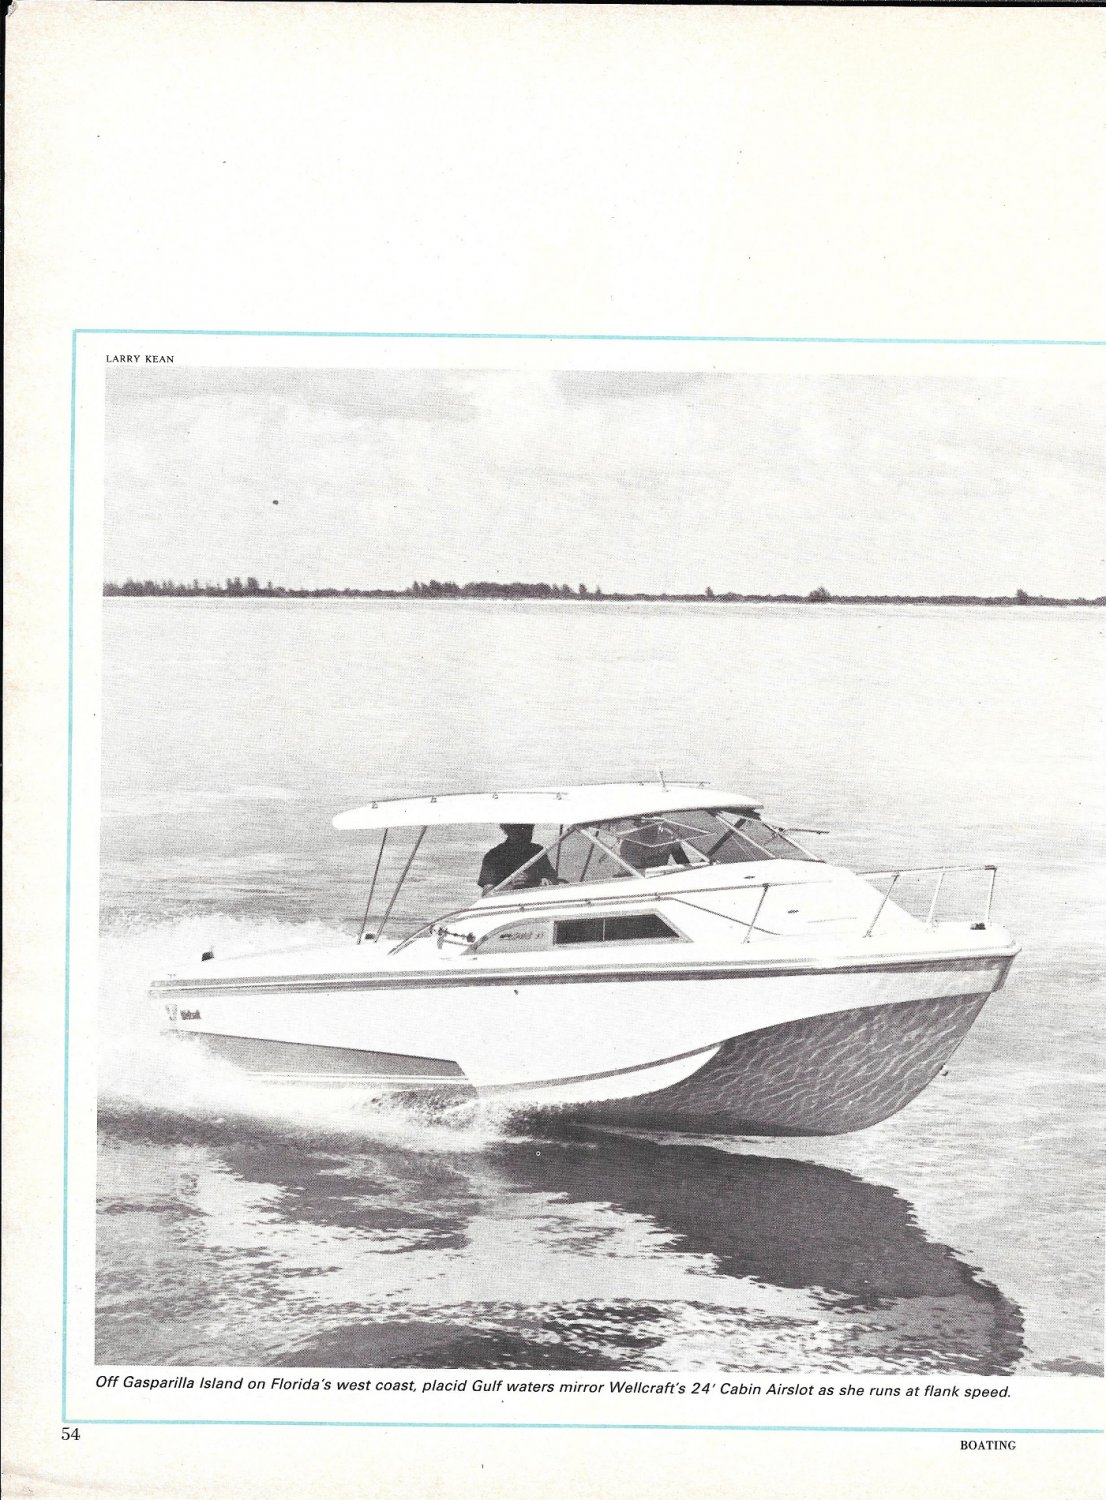 1972 Wellcraft Marine 24' Airslot Boat Review- Boat Specs & Nice Photos